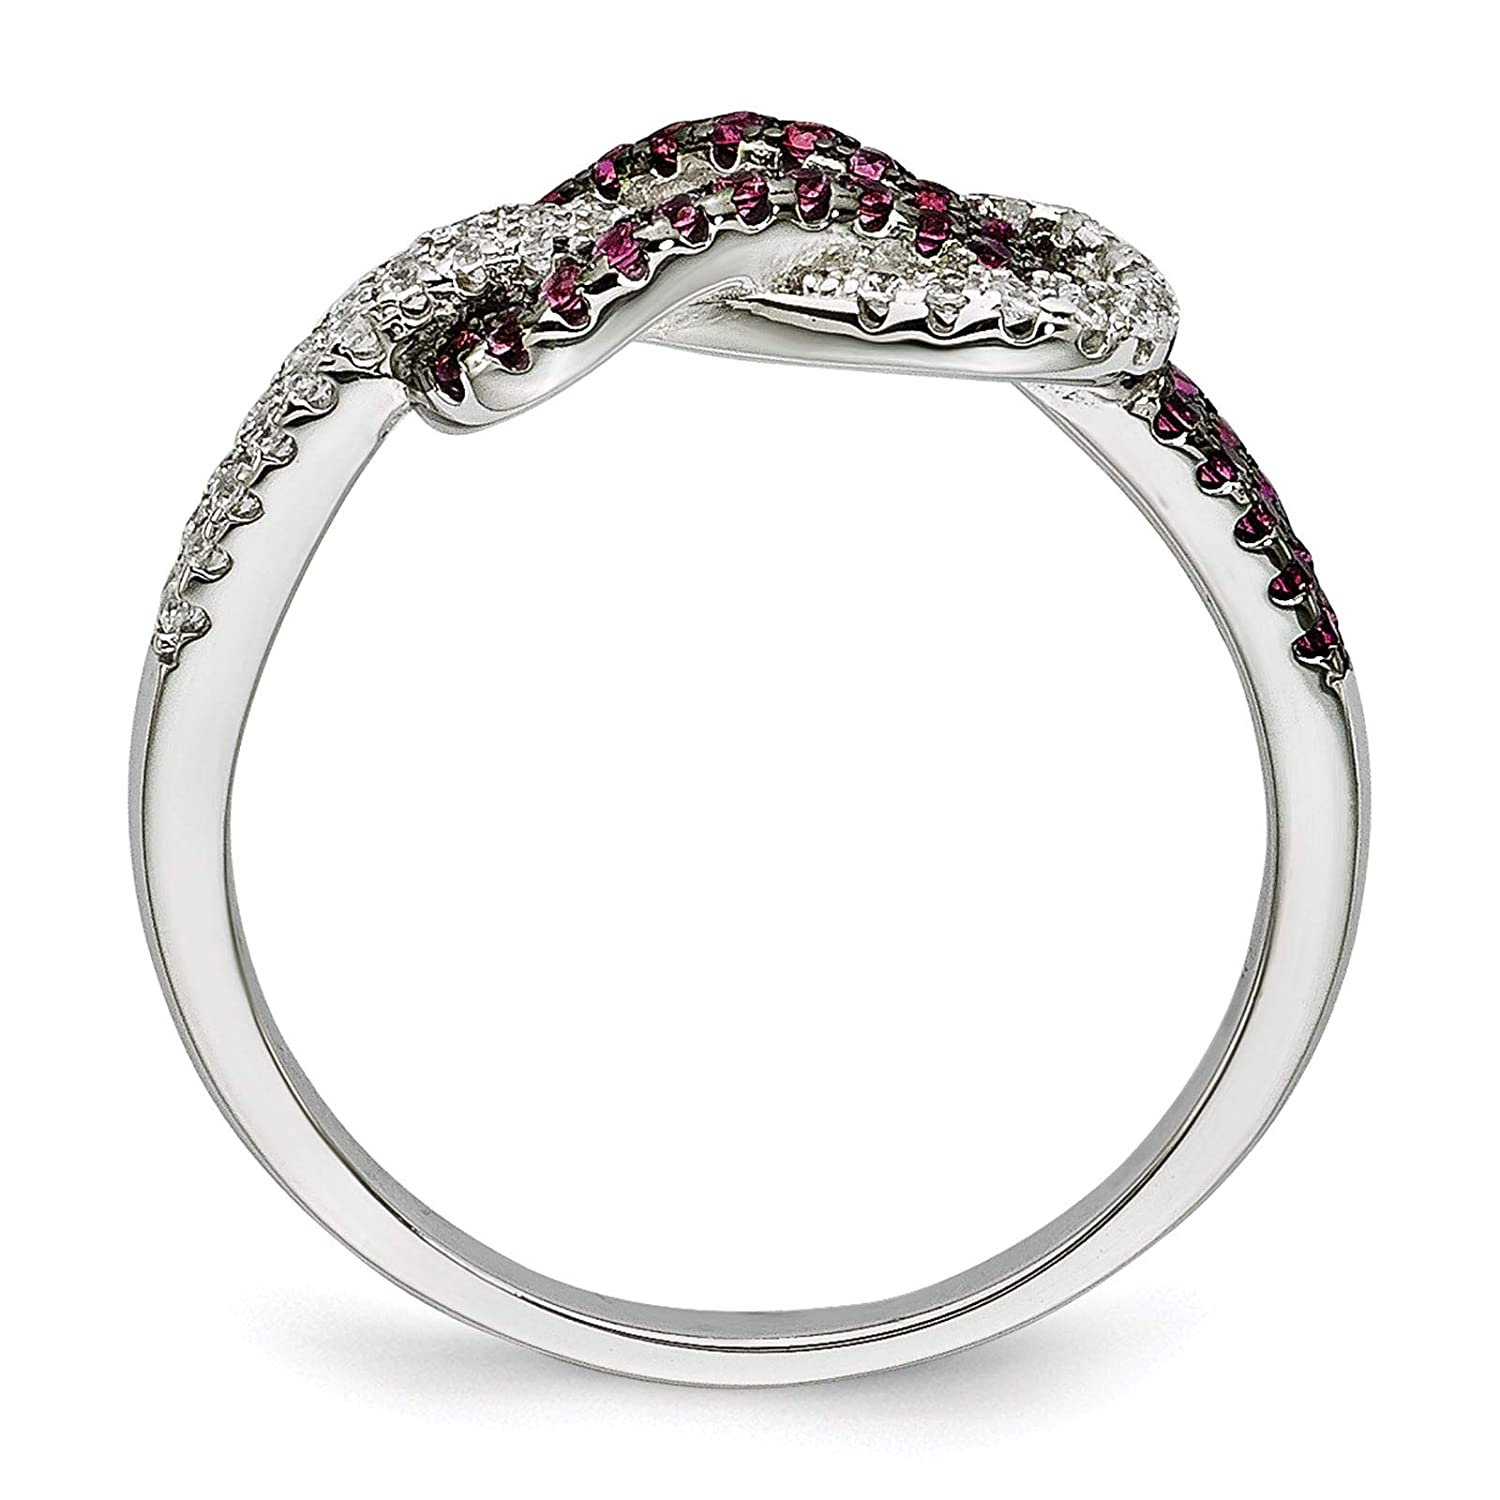 Brilliant Embers 925 Sterling Silver Rhodium-plated Pink /& Clear CZ Love Knot Ring Band Size 6-8